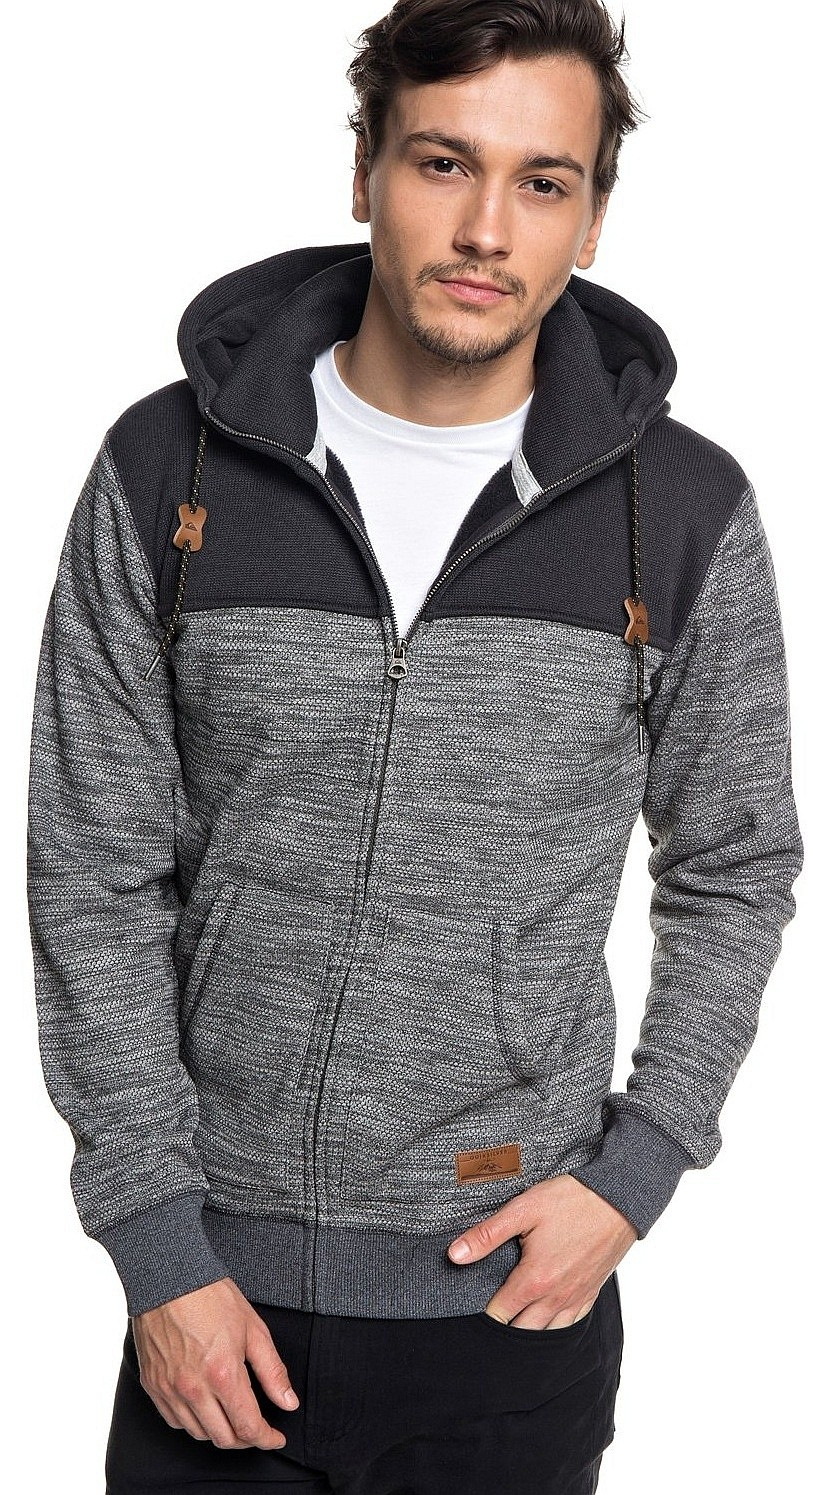 Zip Heather Quiksilver Block Gray Sweatshirt Men´s Keller Krphdark 7HtxT